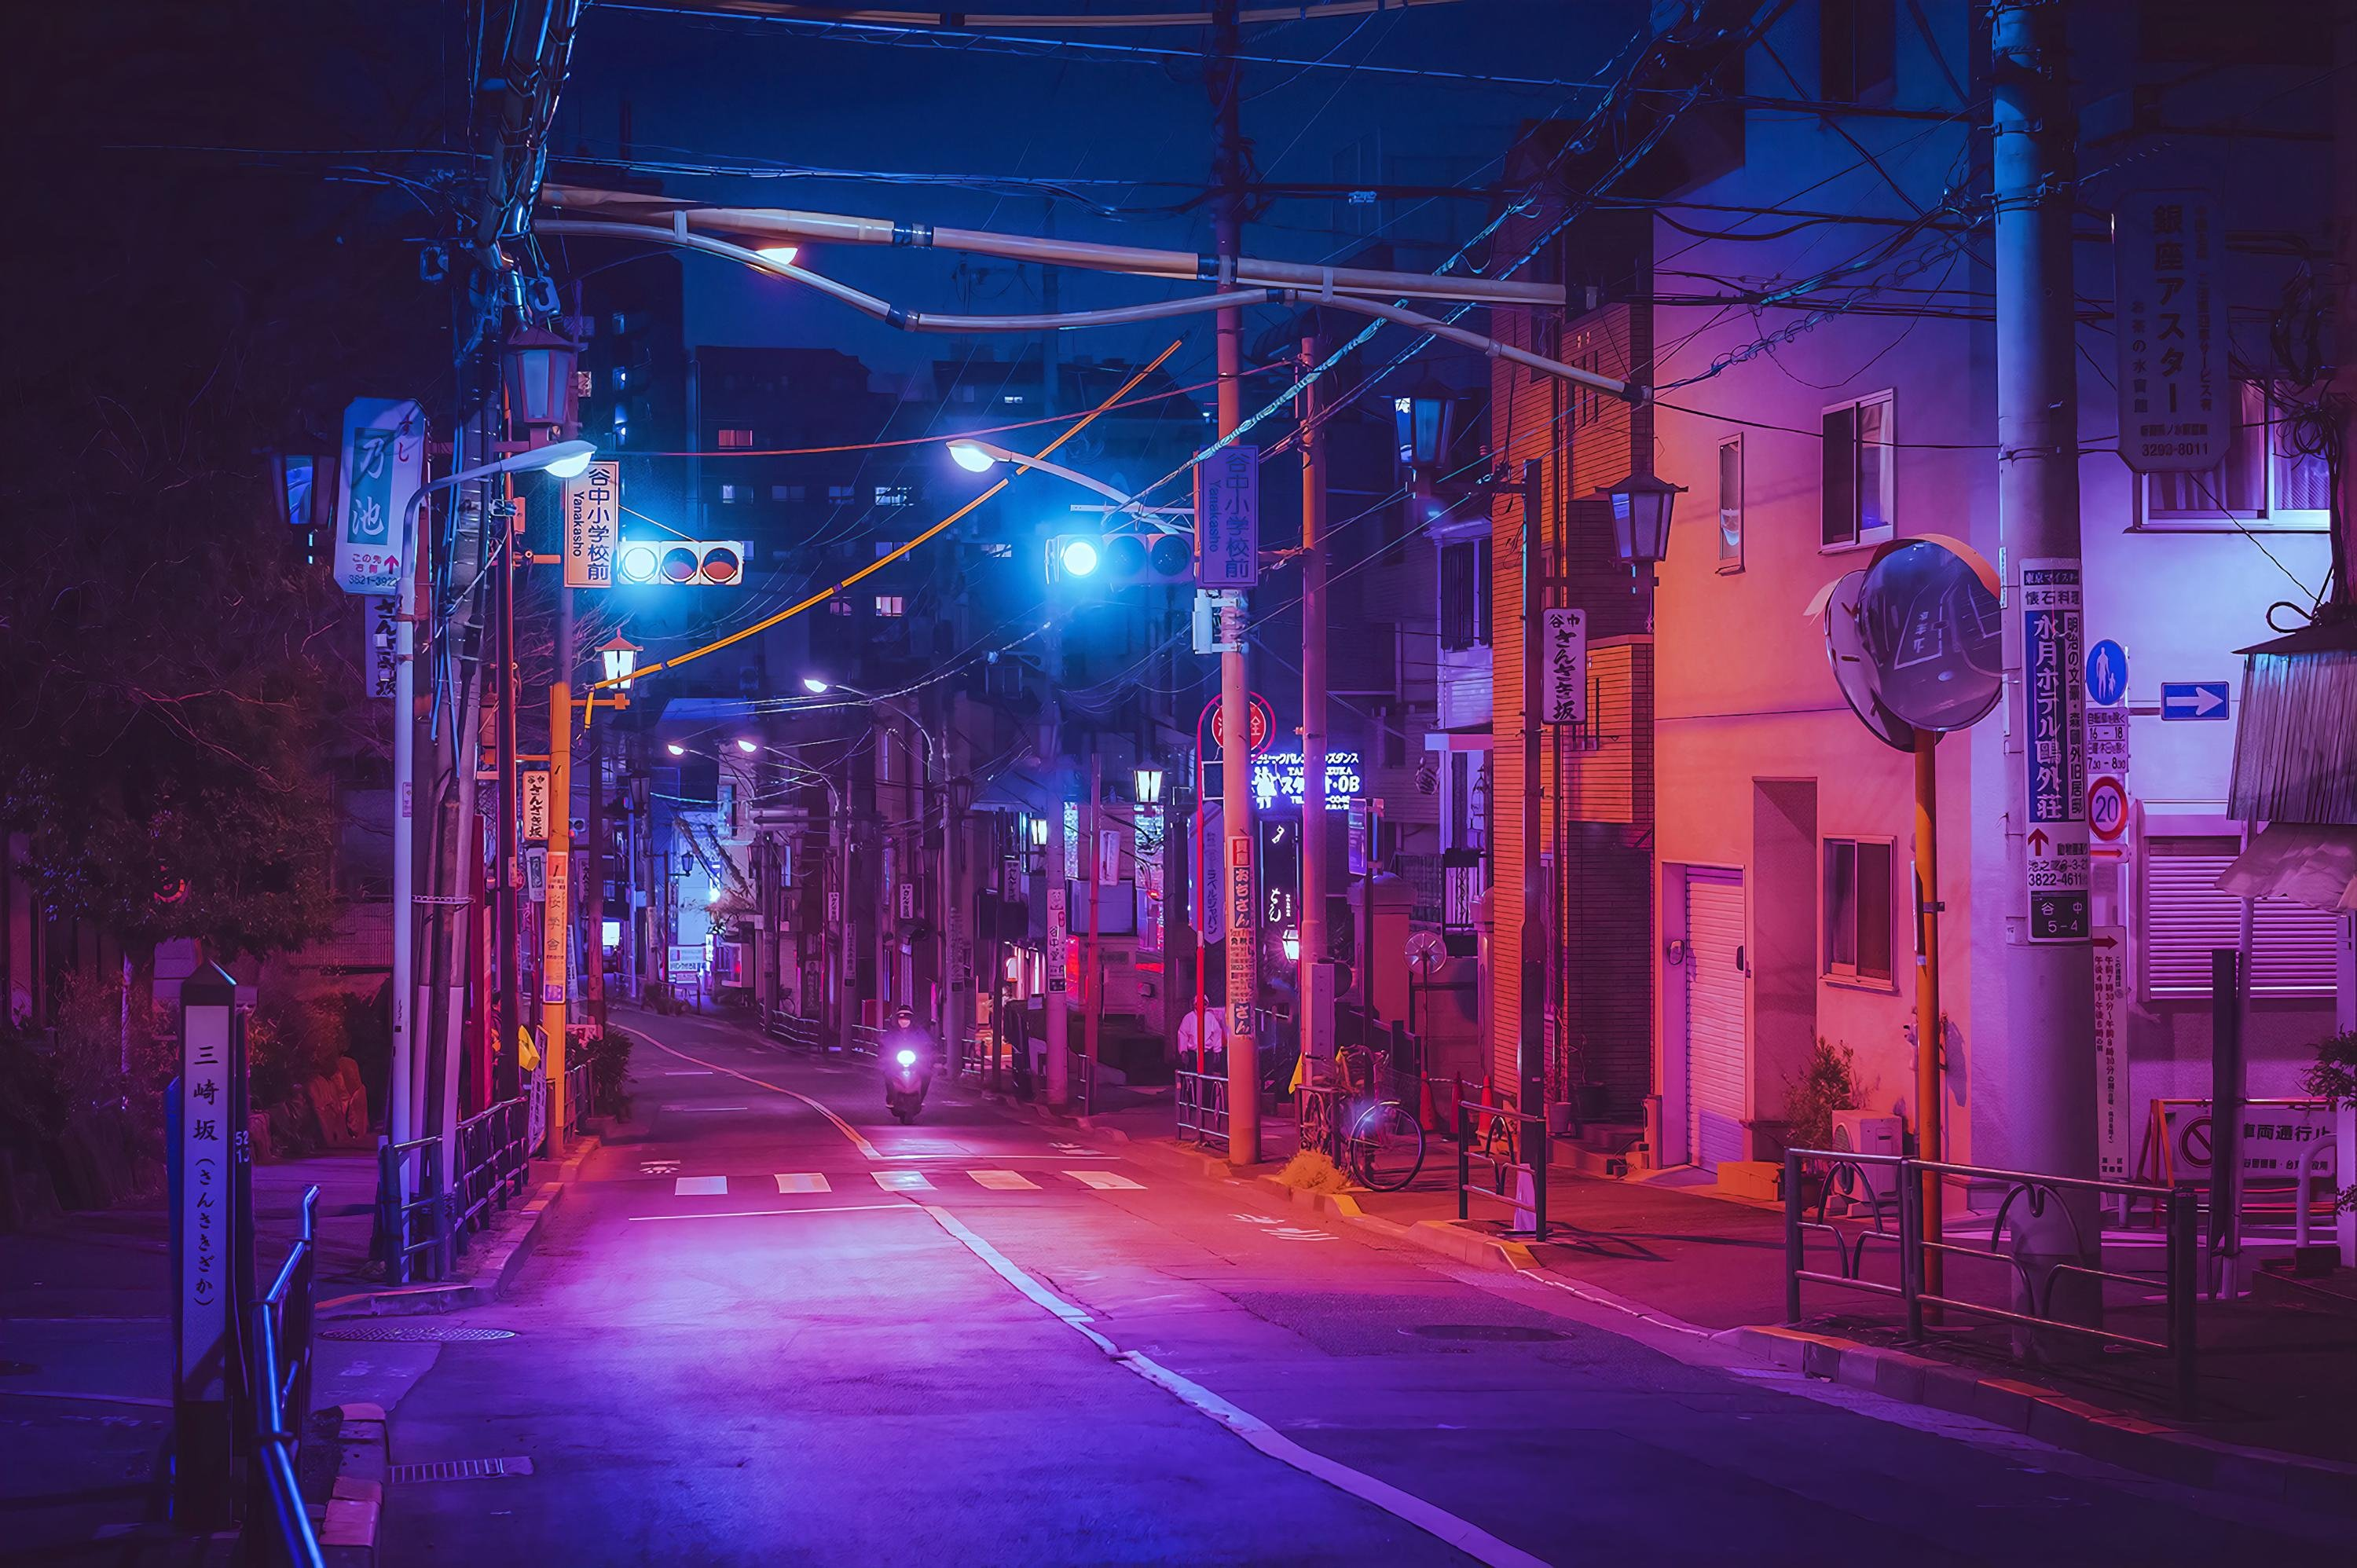 Japanese Street Wallpaper Posted By Samantha Peltier